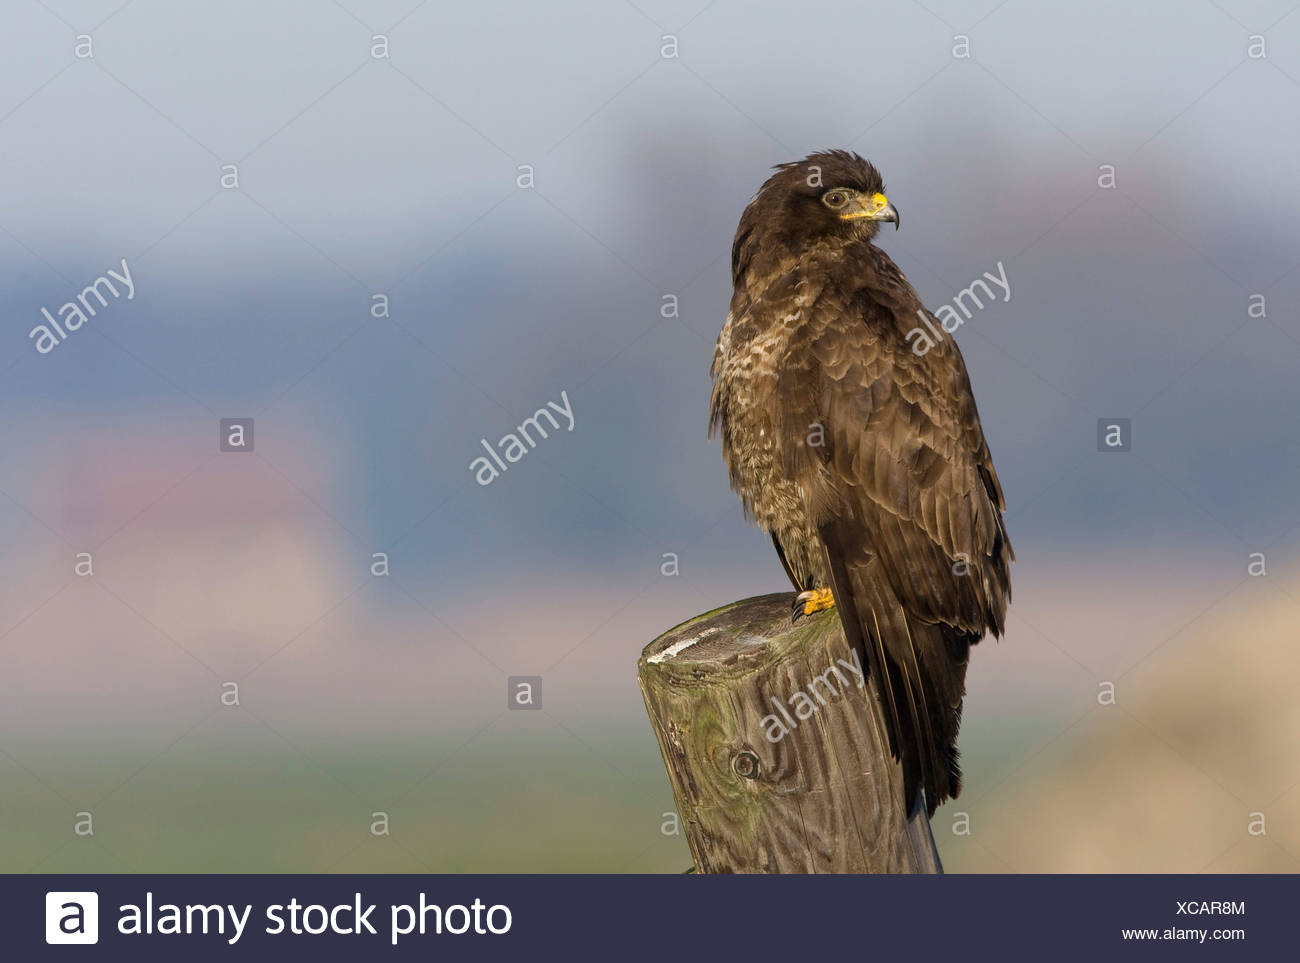 Common Buzzard on a stake-out Buizerd op de uitkijk - Stock Image